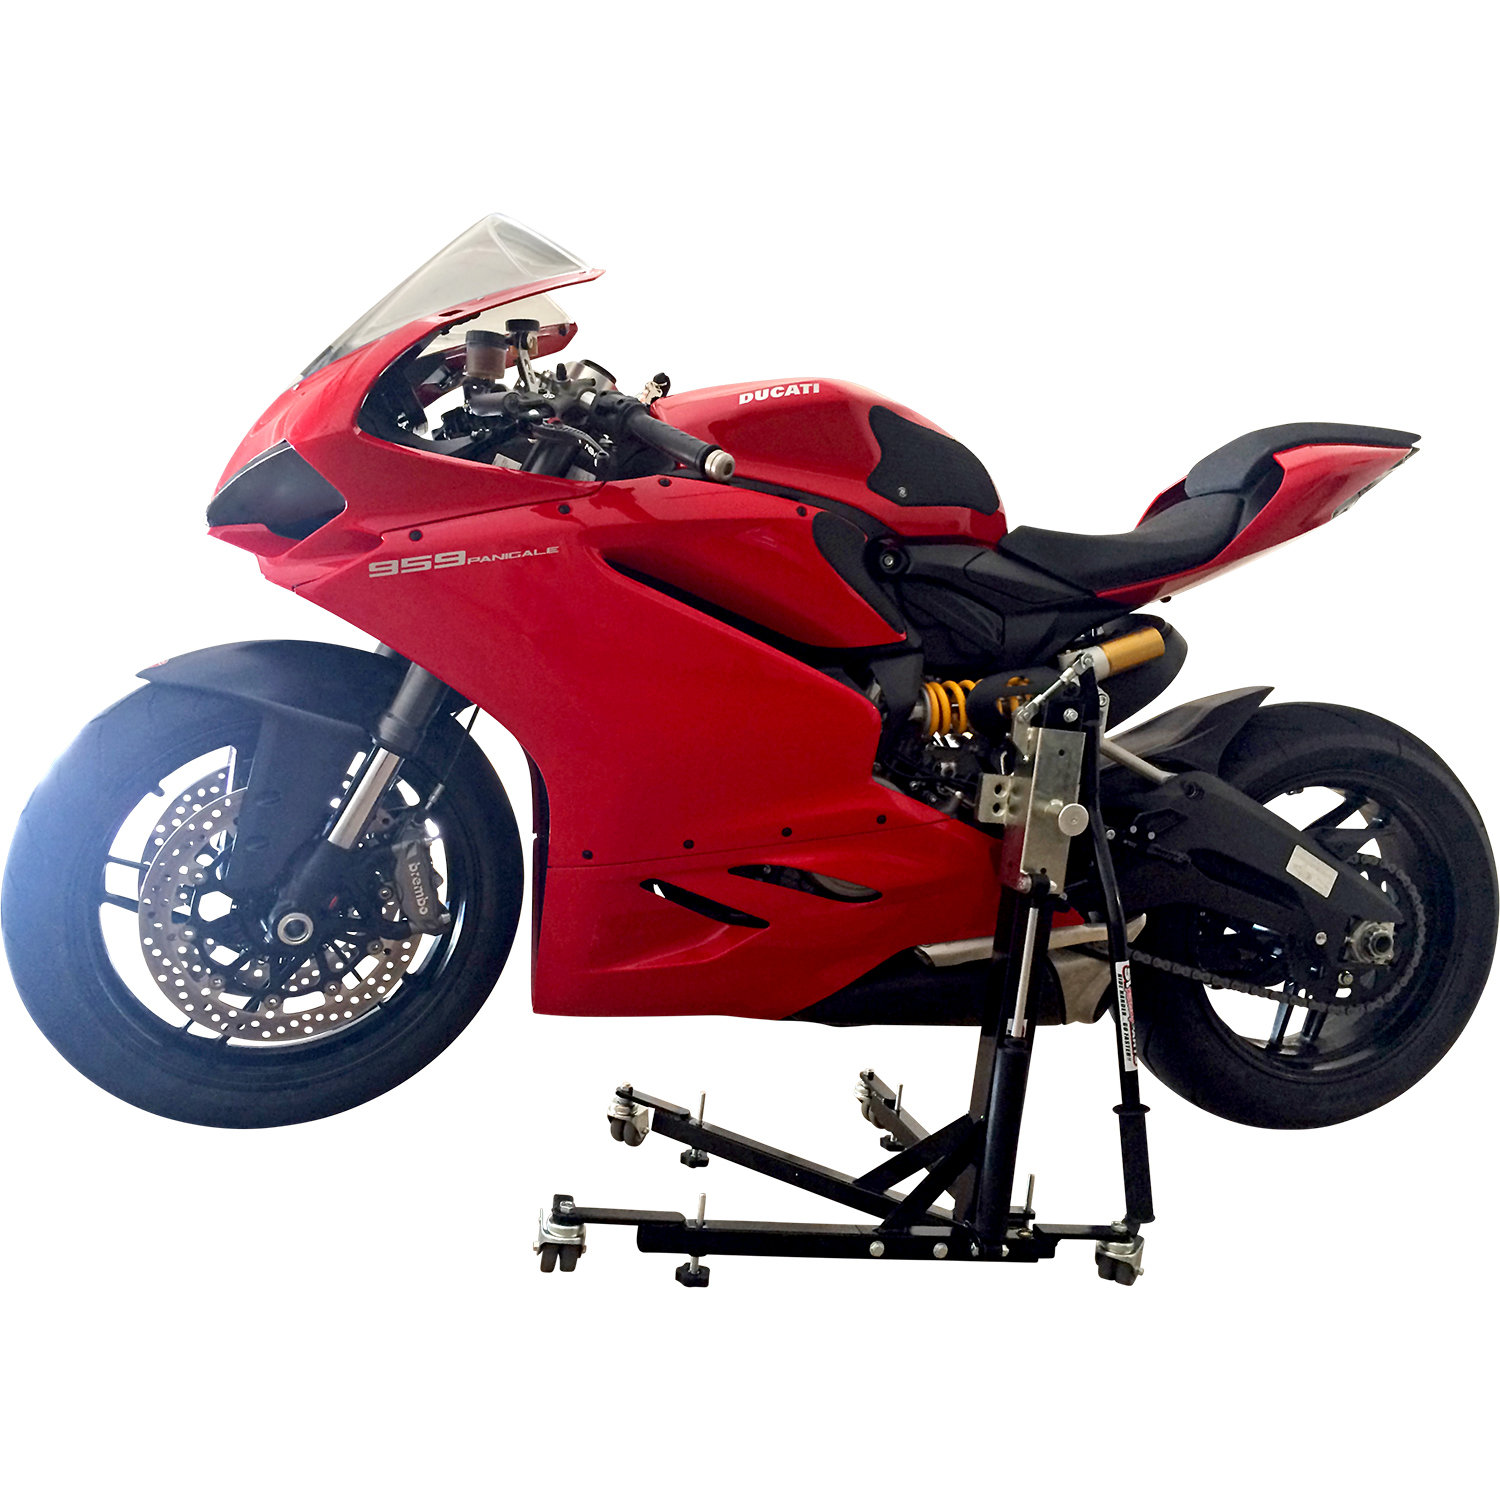 Black Custom Paddock Style Side Lift Stands Ducati 959 Panigale Models